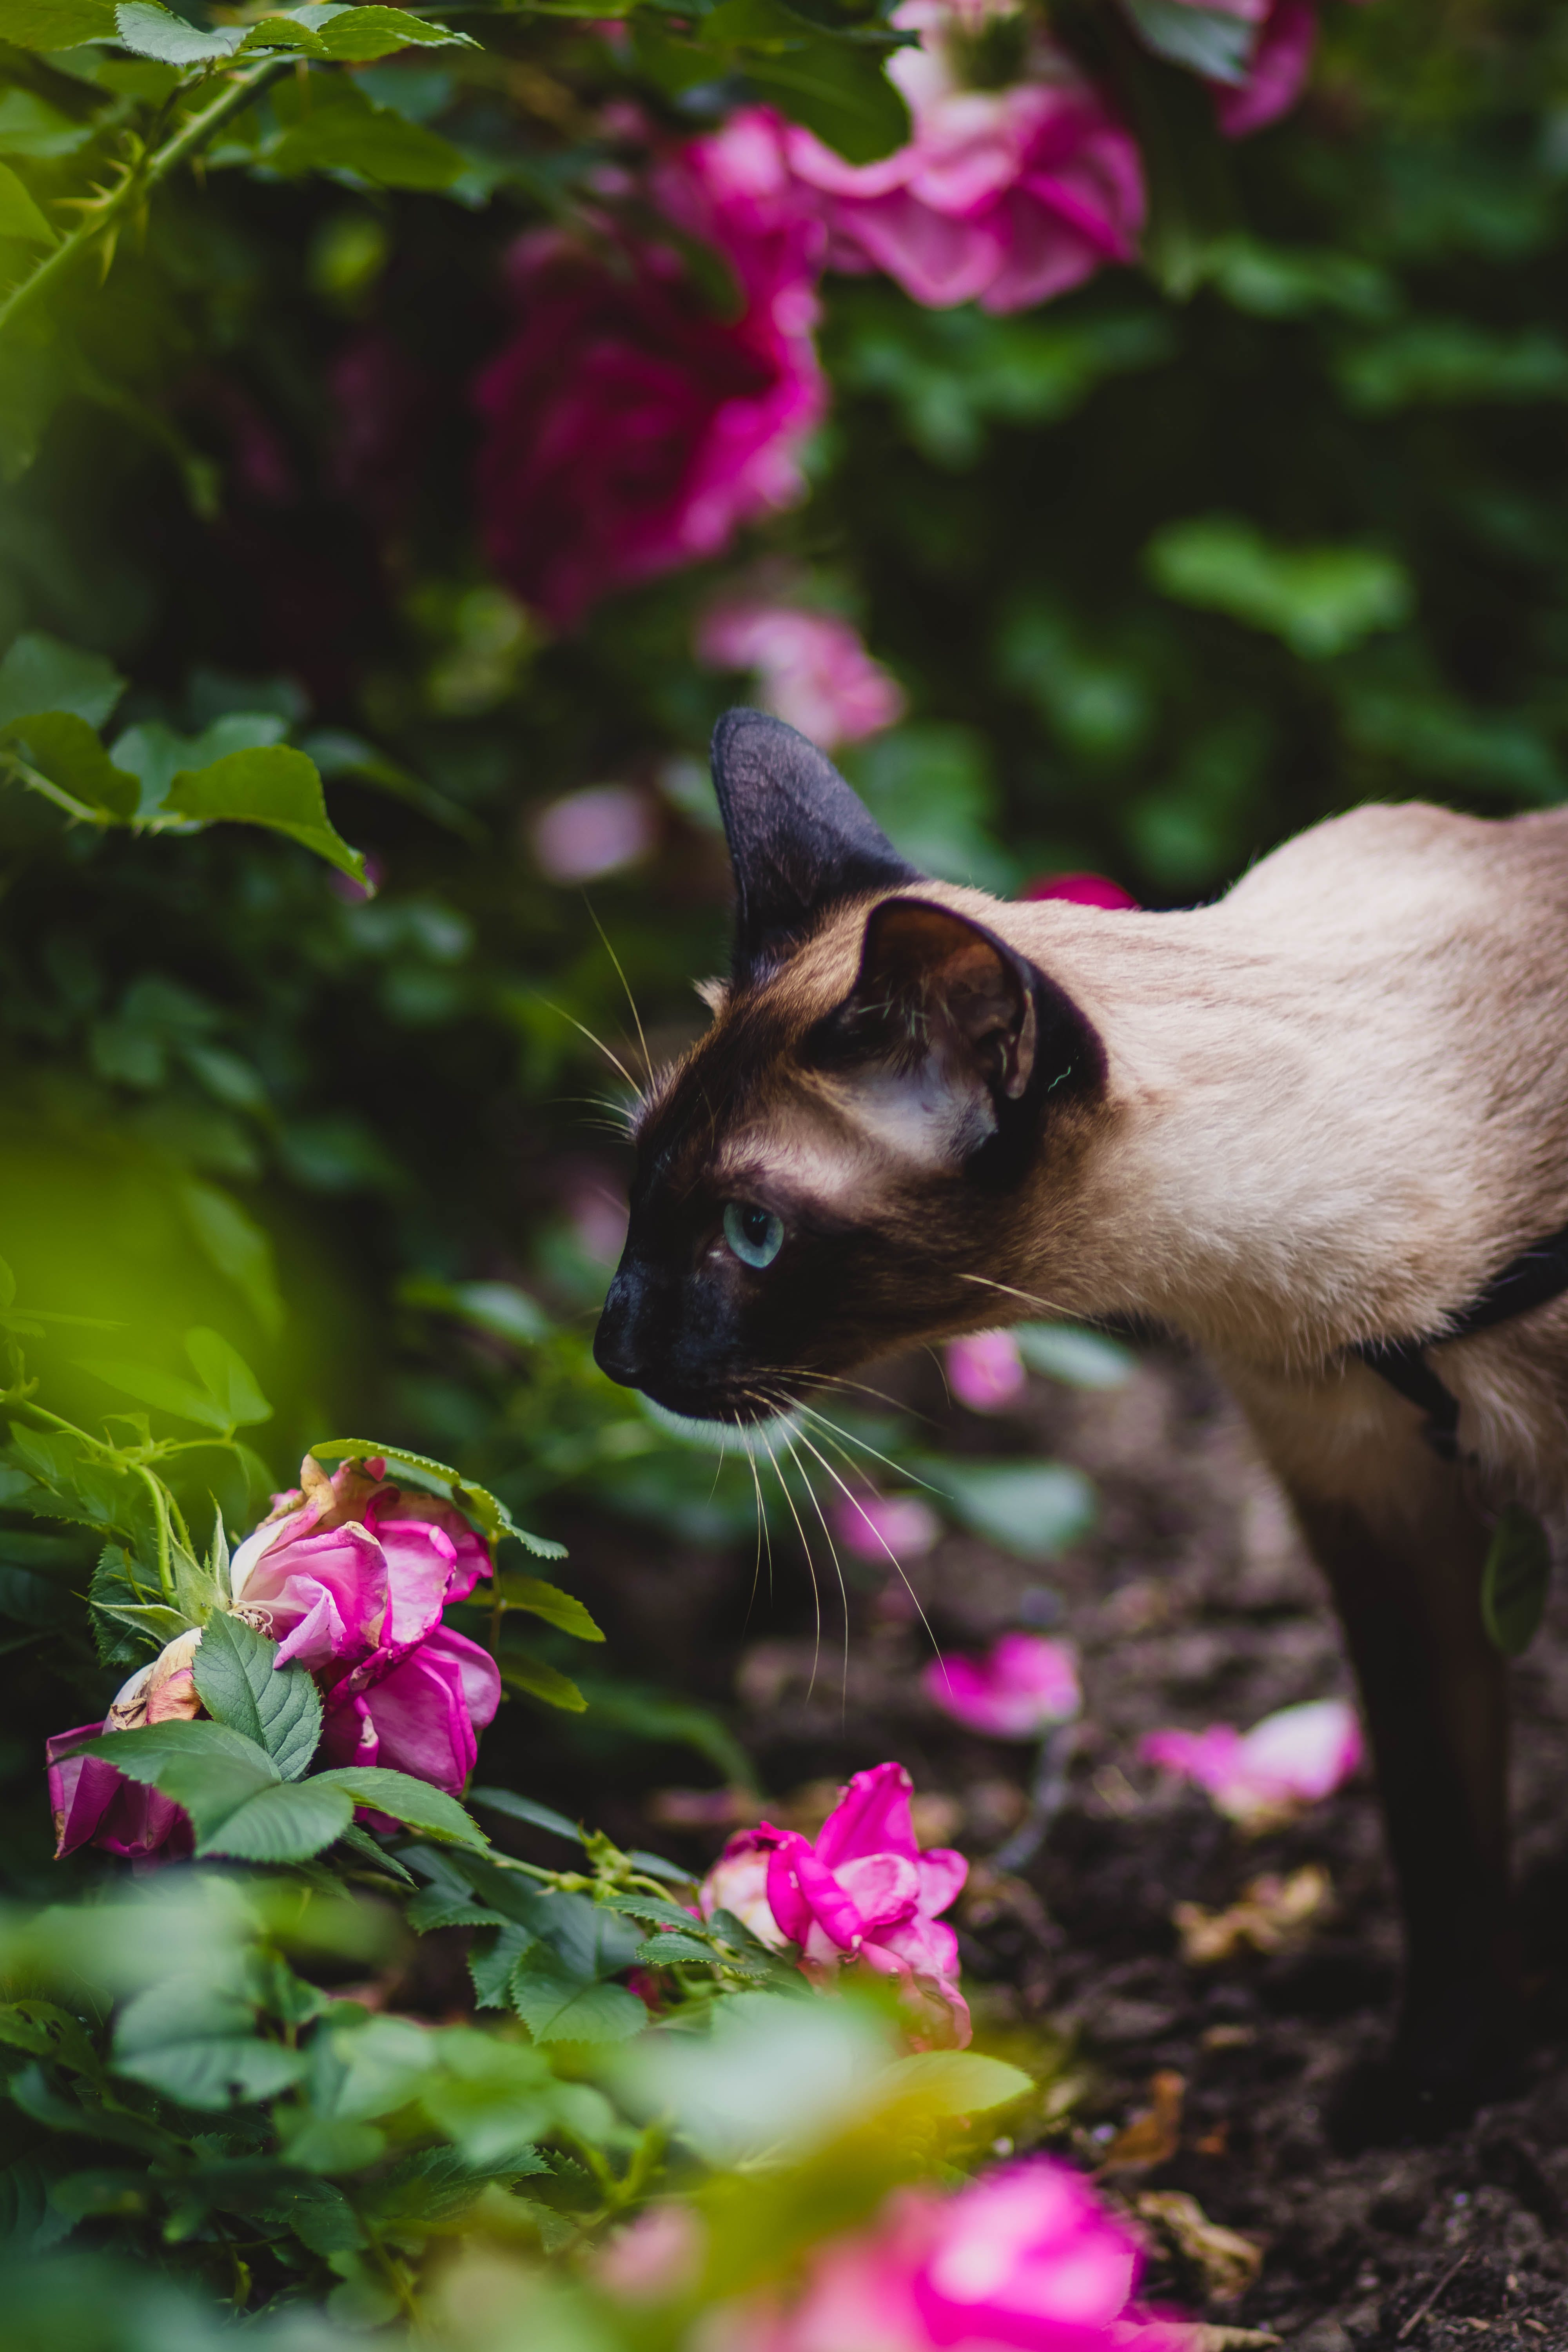 Brown and Black Siamese Cat Near Flower